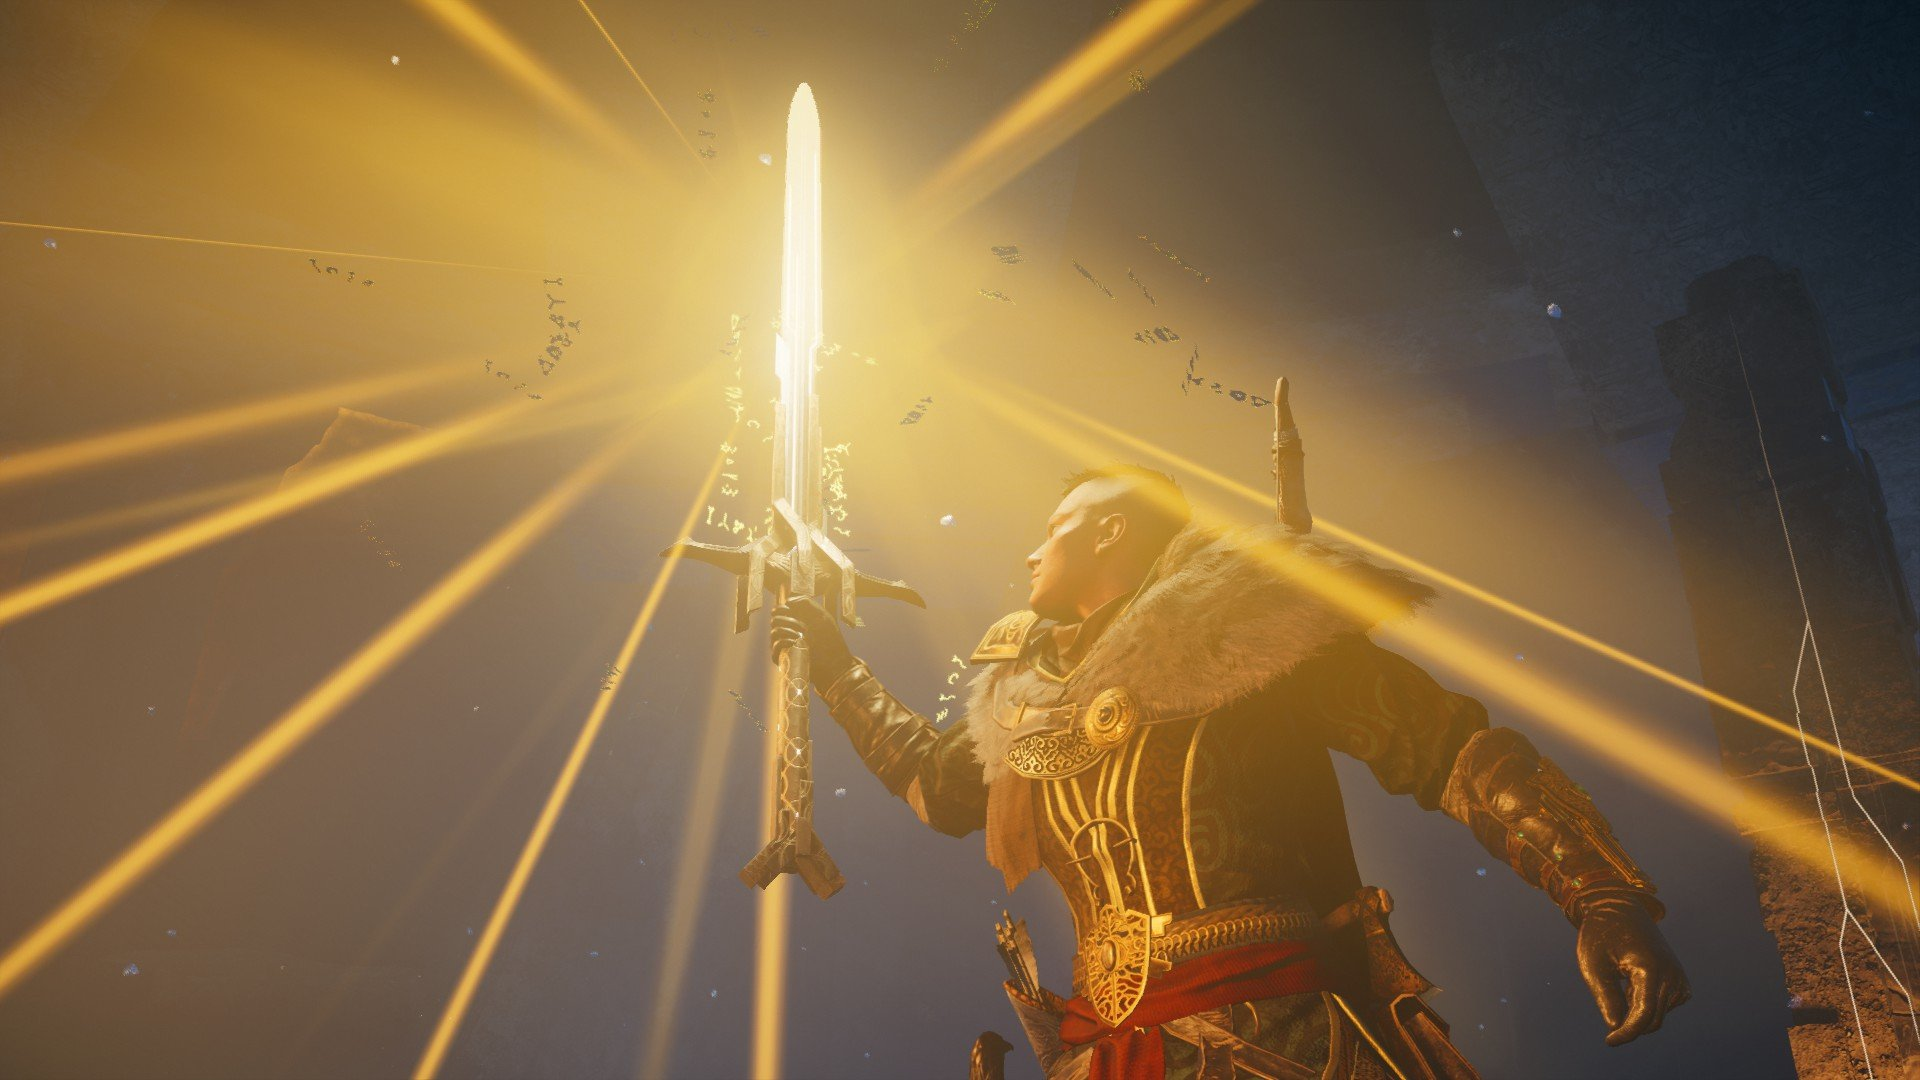 Eivor in a cave, holding up Excalibur in the air as it glows